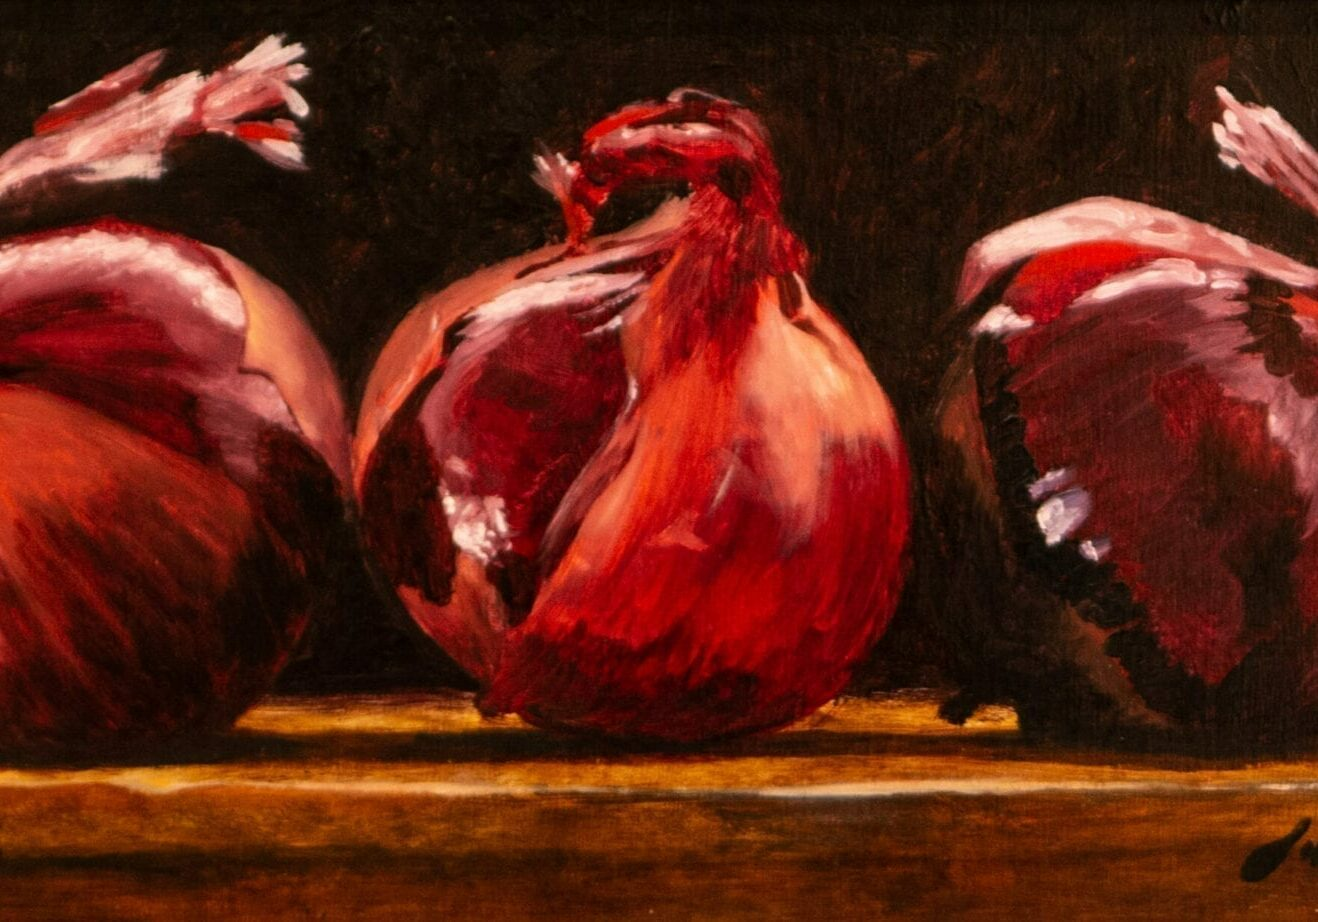 Adams_Red_Onion_Trio_8x16_Full (1)